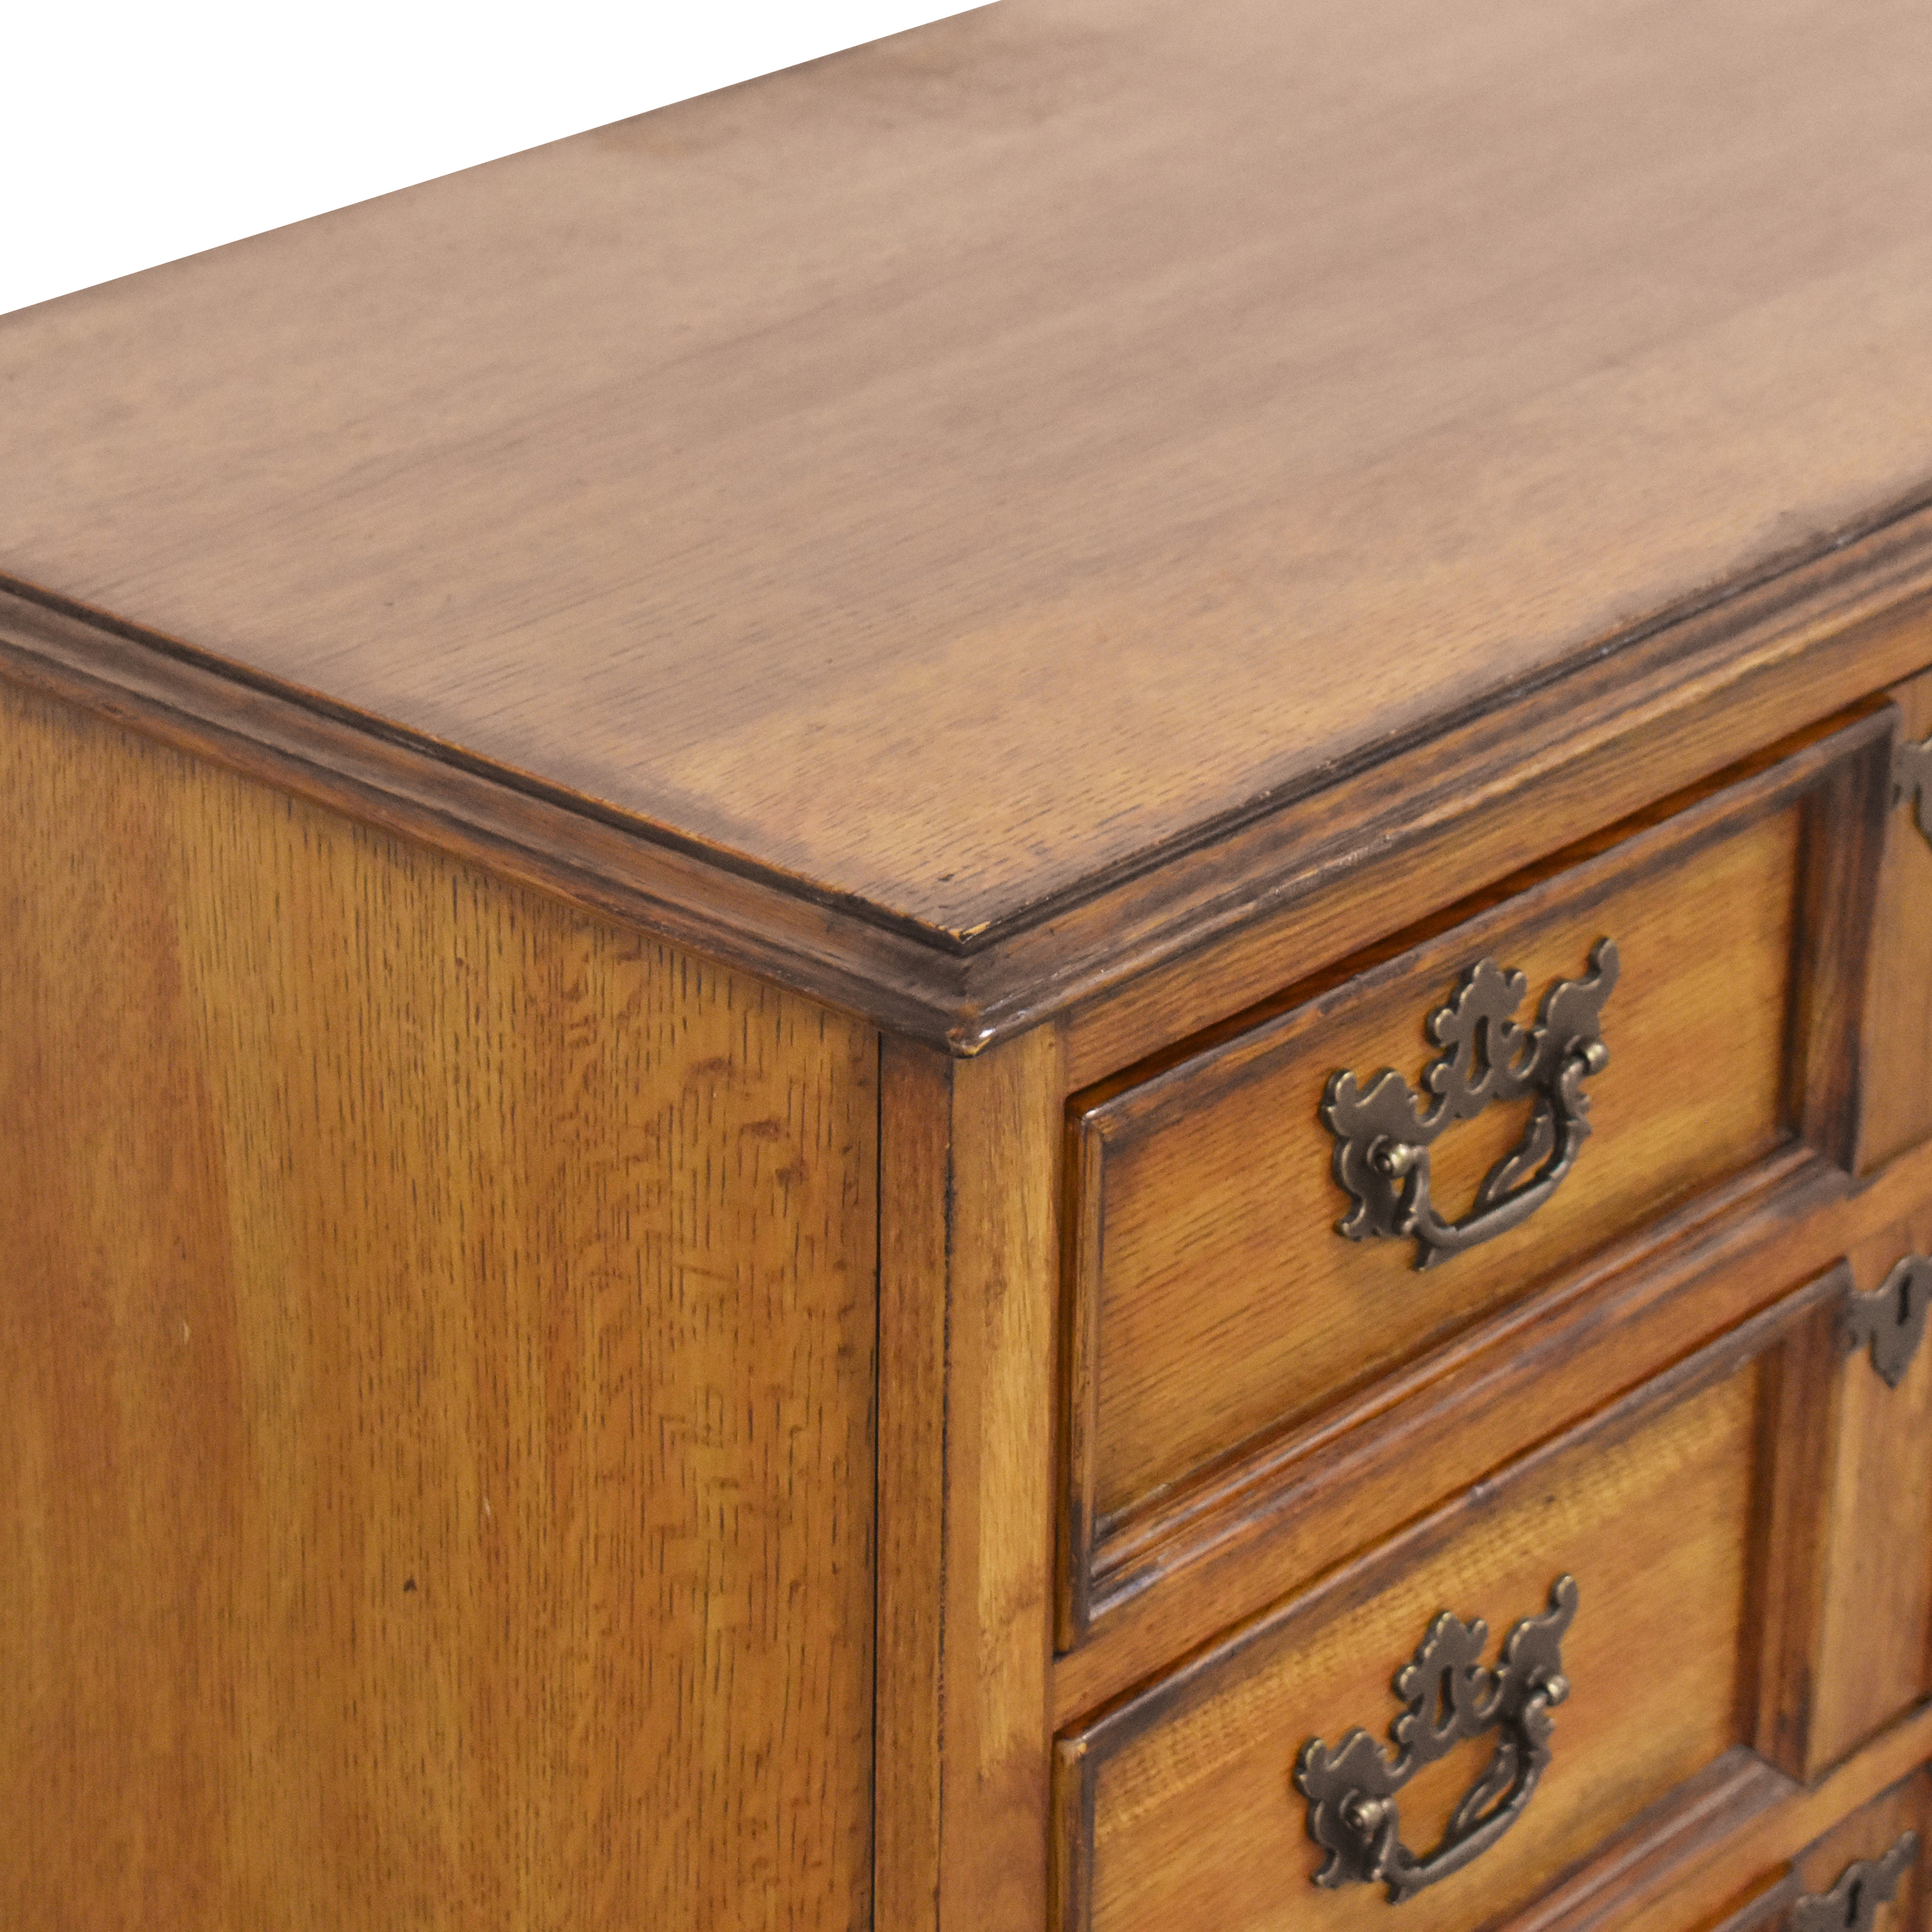 Drexel Heritage Drexel Heritage Royal Country Retreats Chest brown